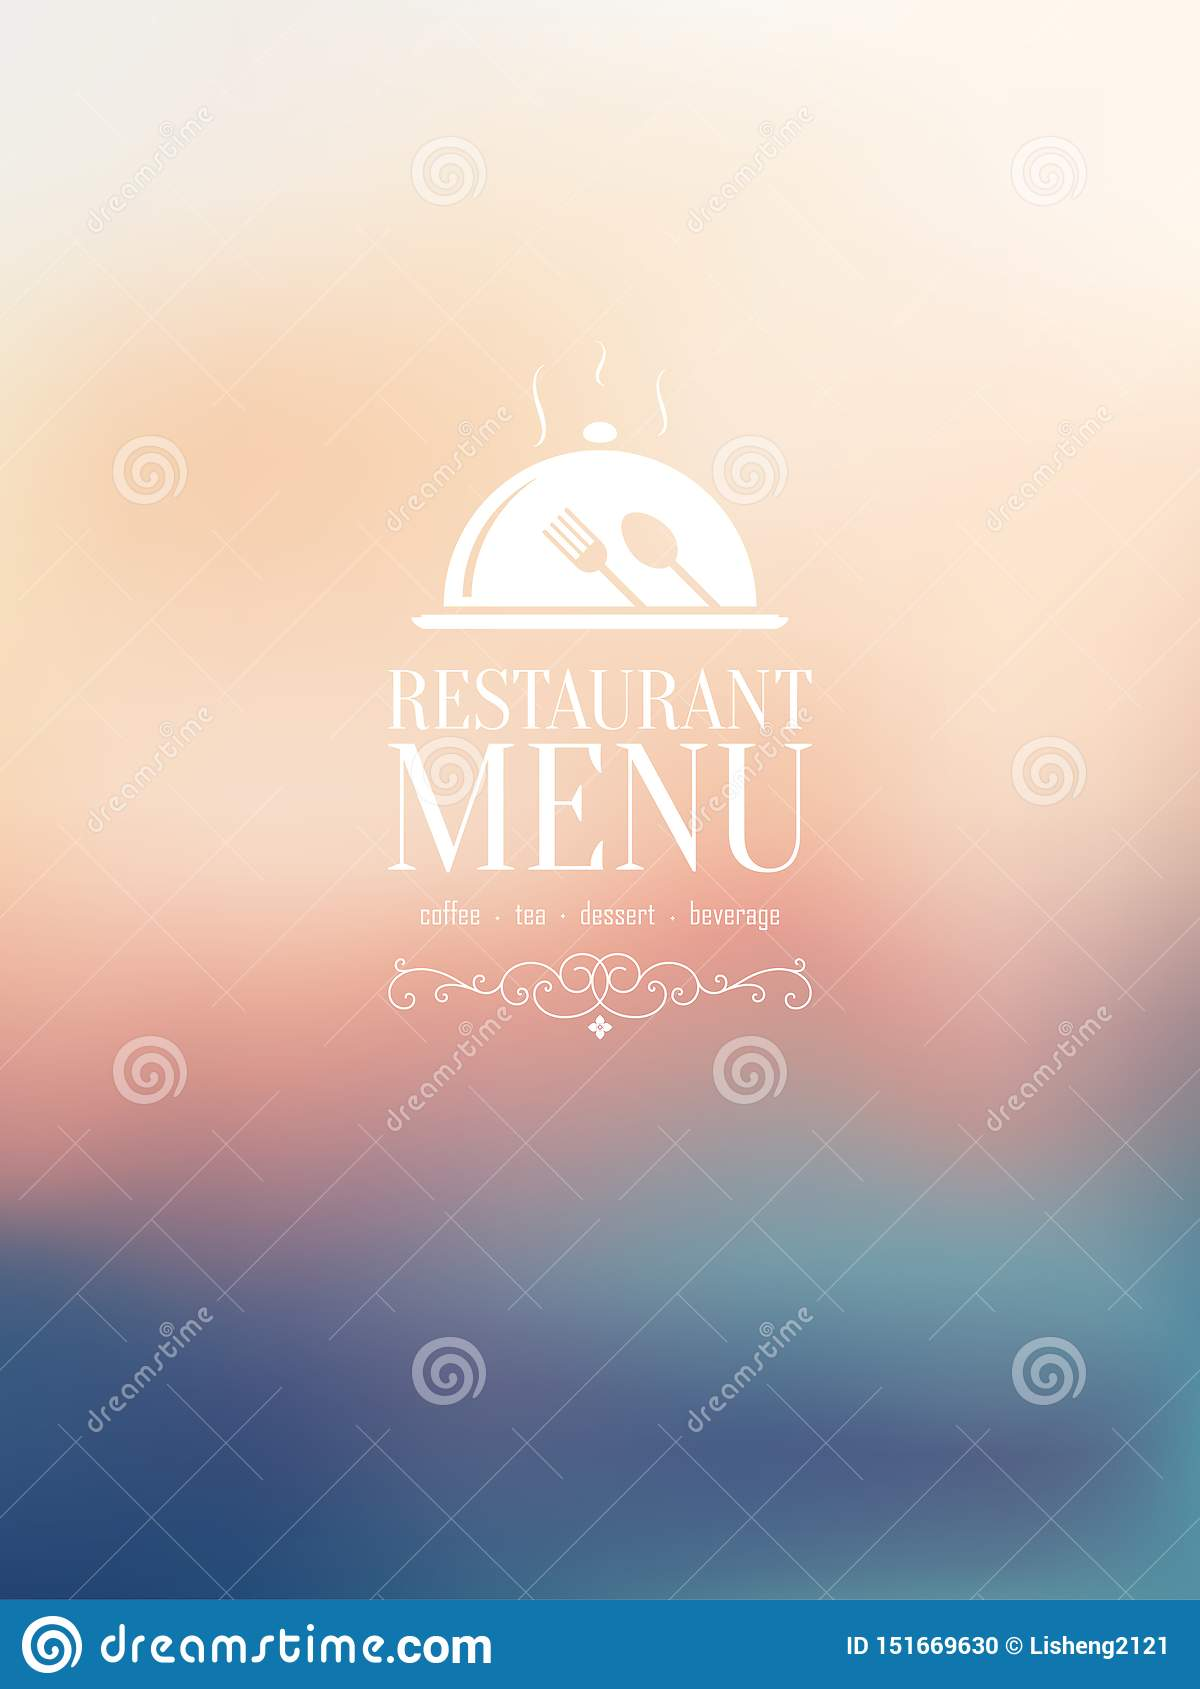 A Restaurant Menu Design Blurred Stock Vector Illustration Of Beach Island 151669630